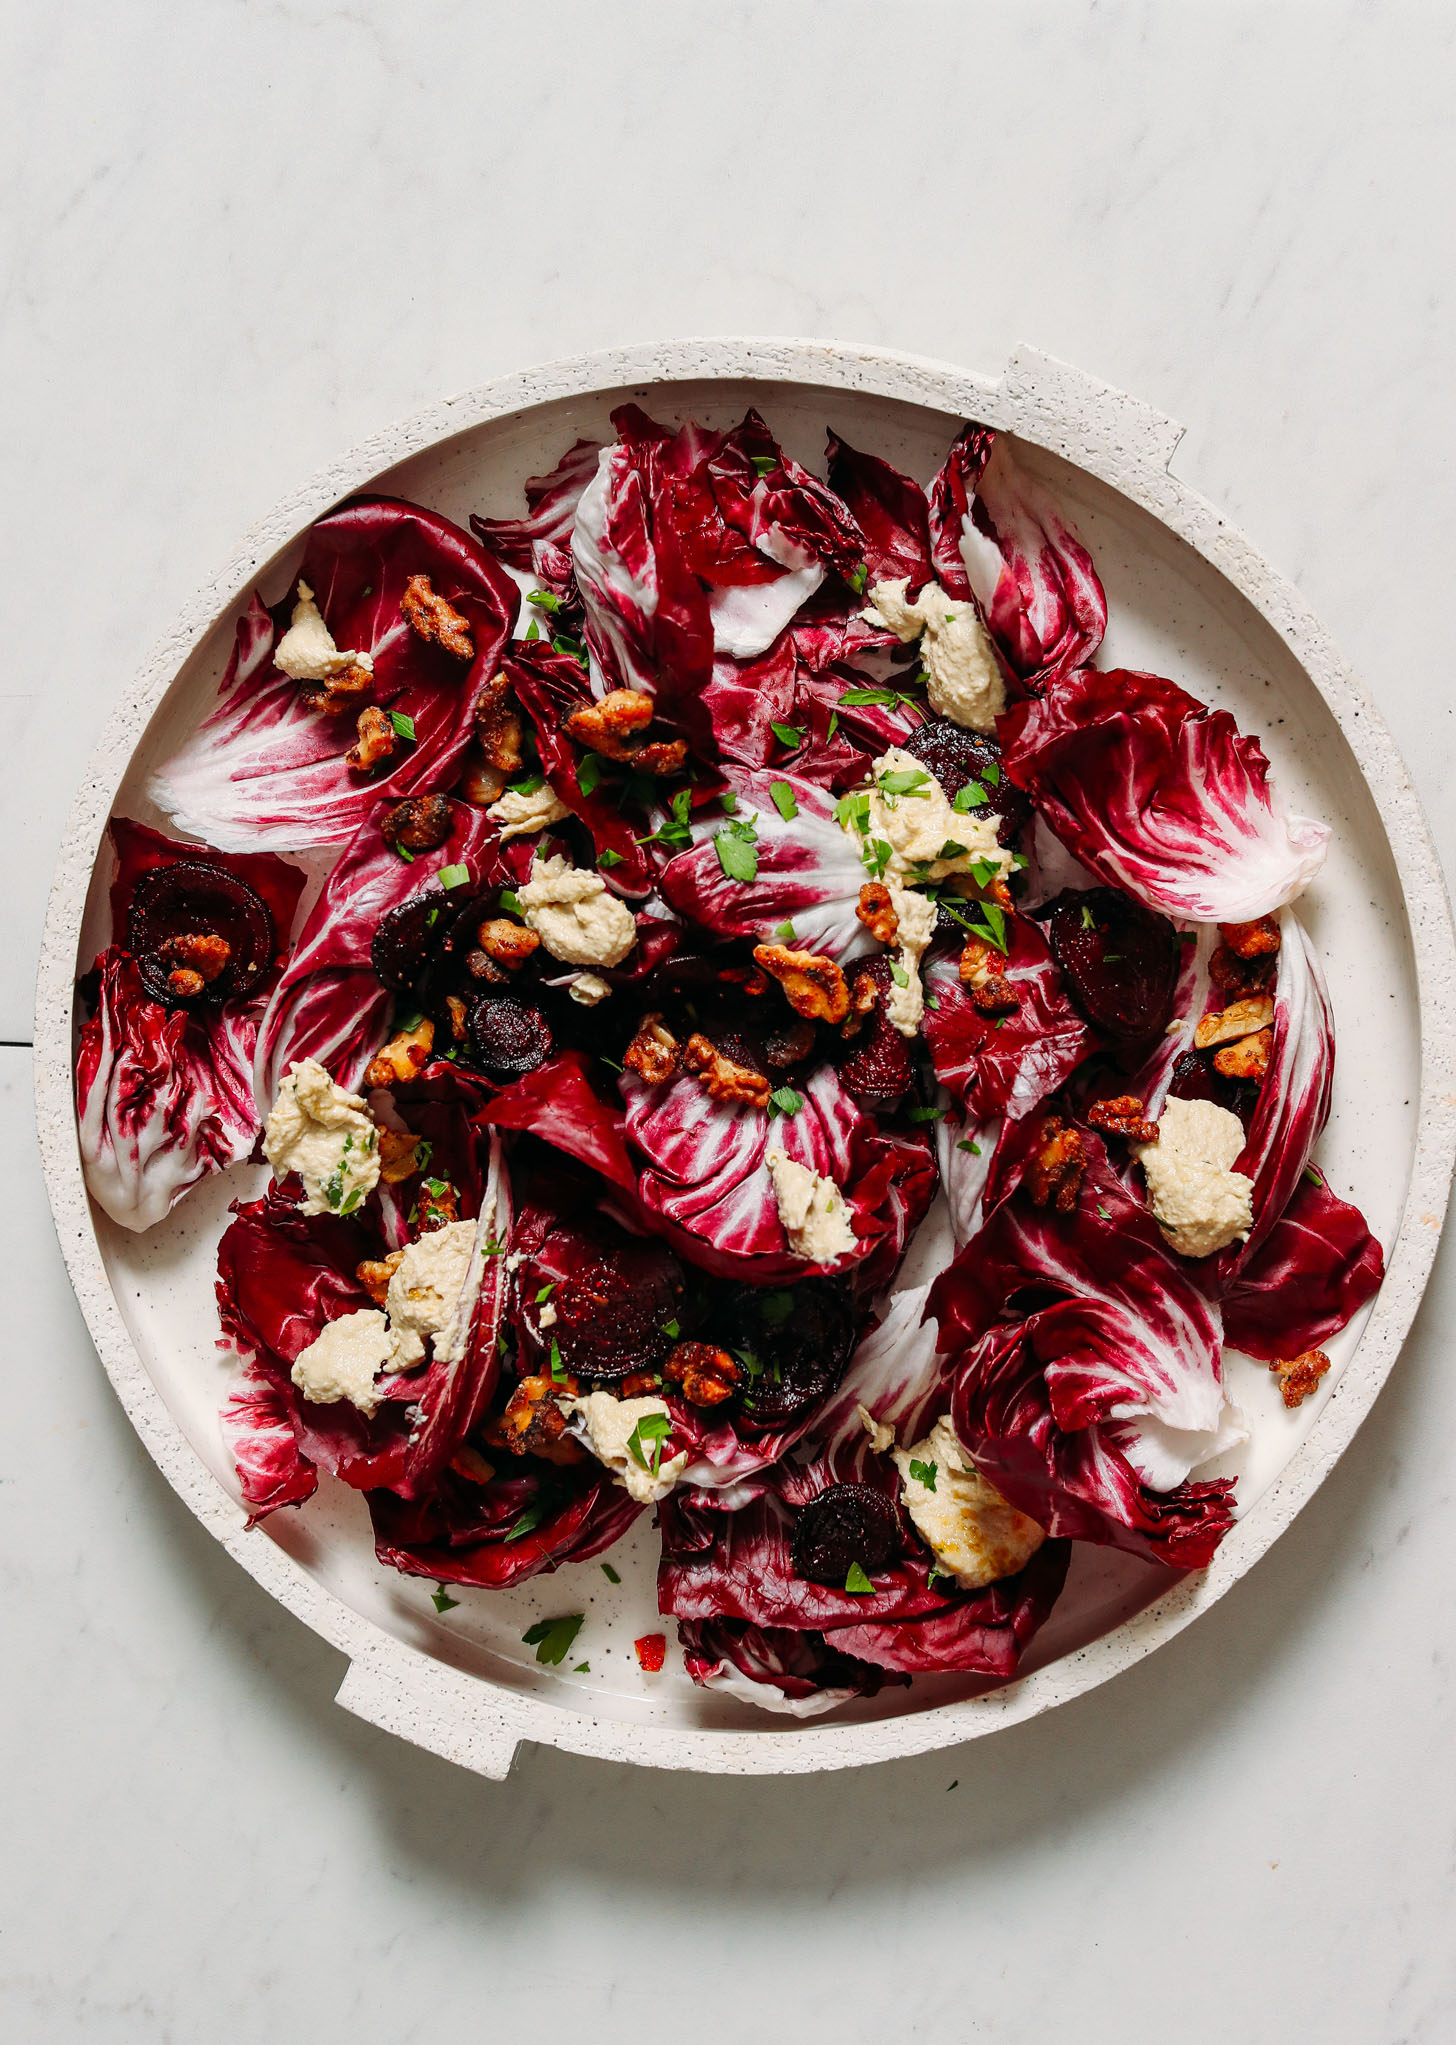 Plate of radicchio salad with roasted beets, garlic and lemony cashew ricotta vinaigrette